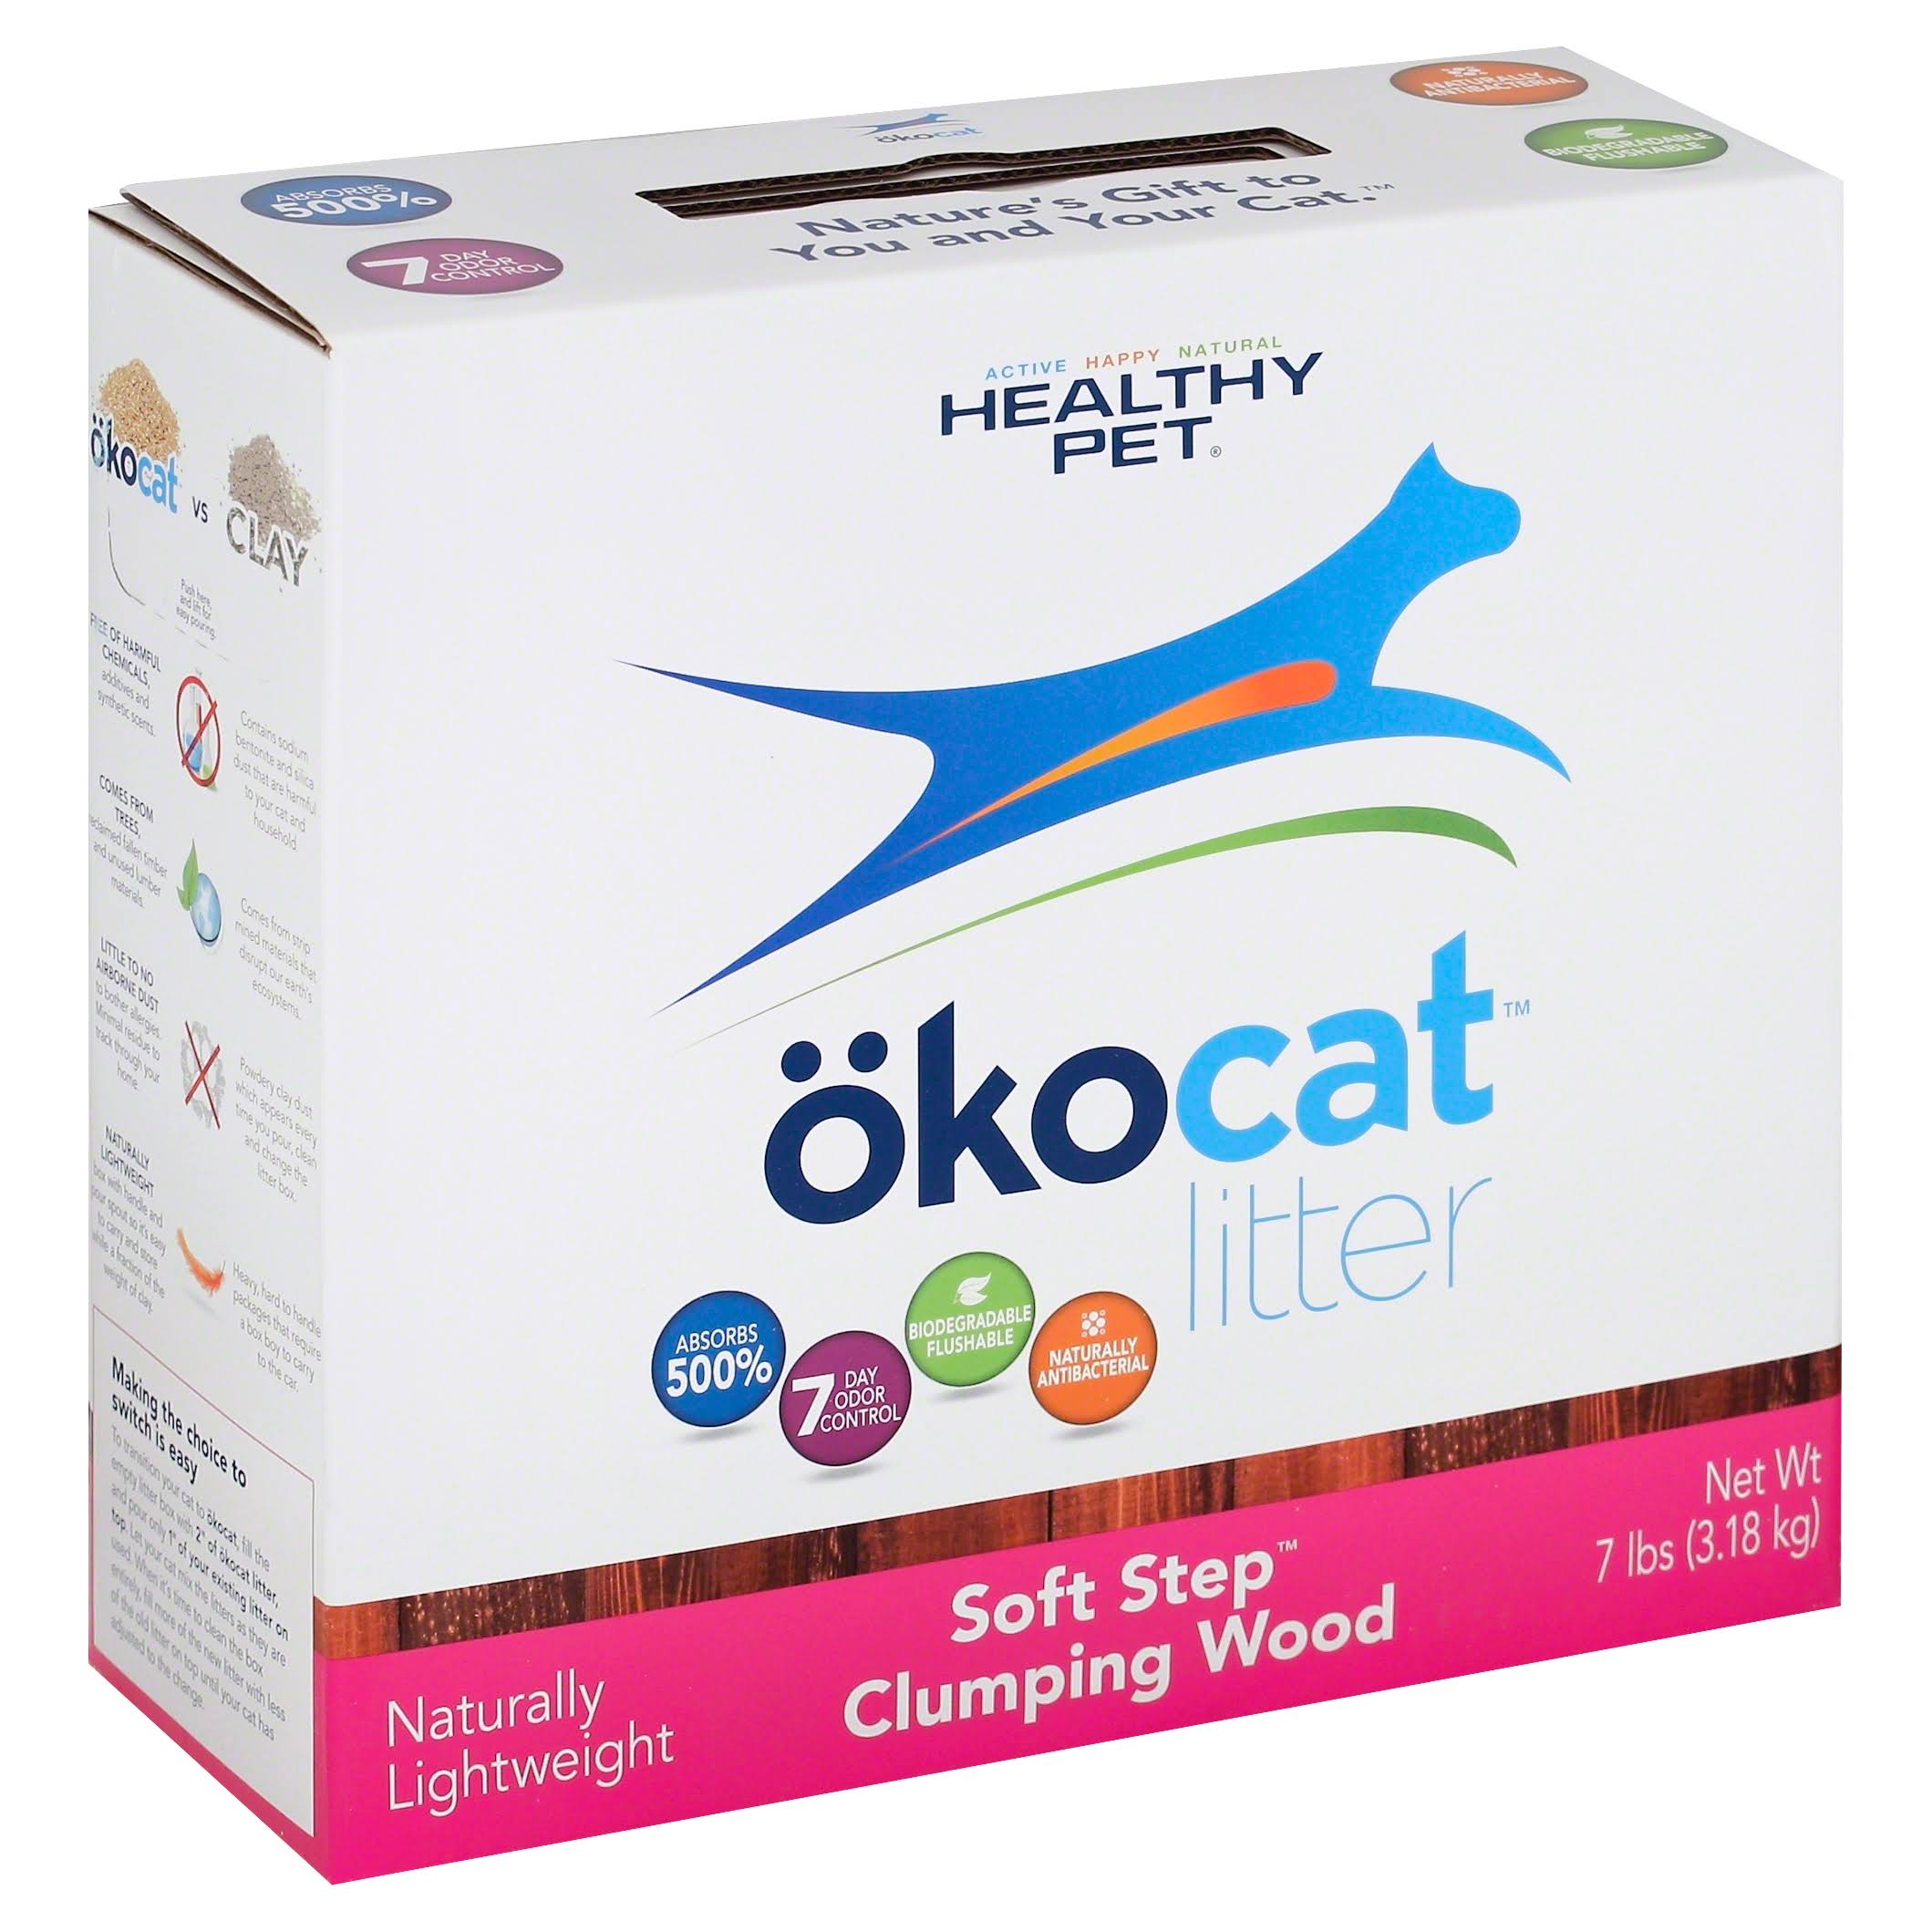 Okocat Soft-step Clumping Wood Litter